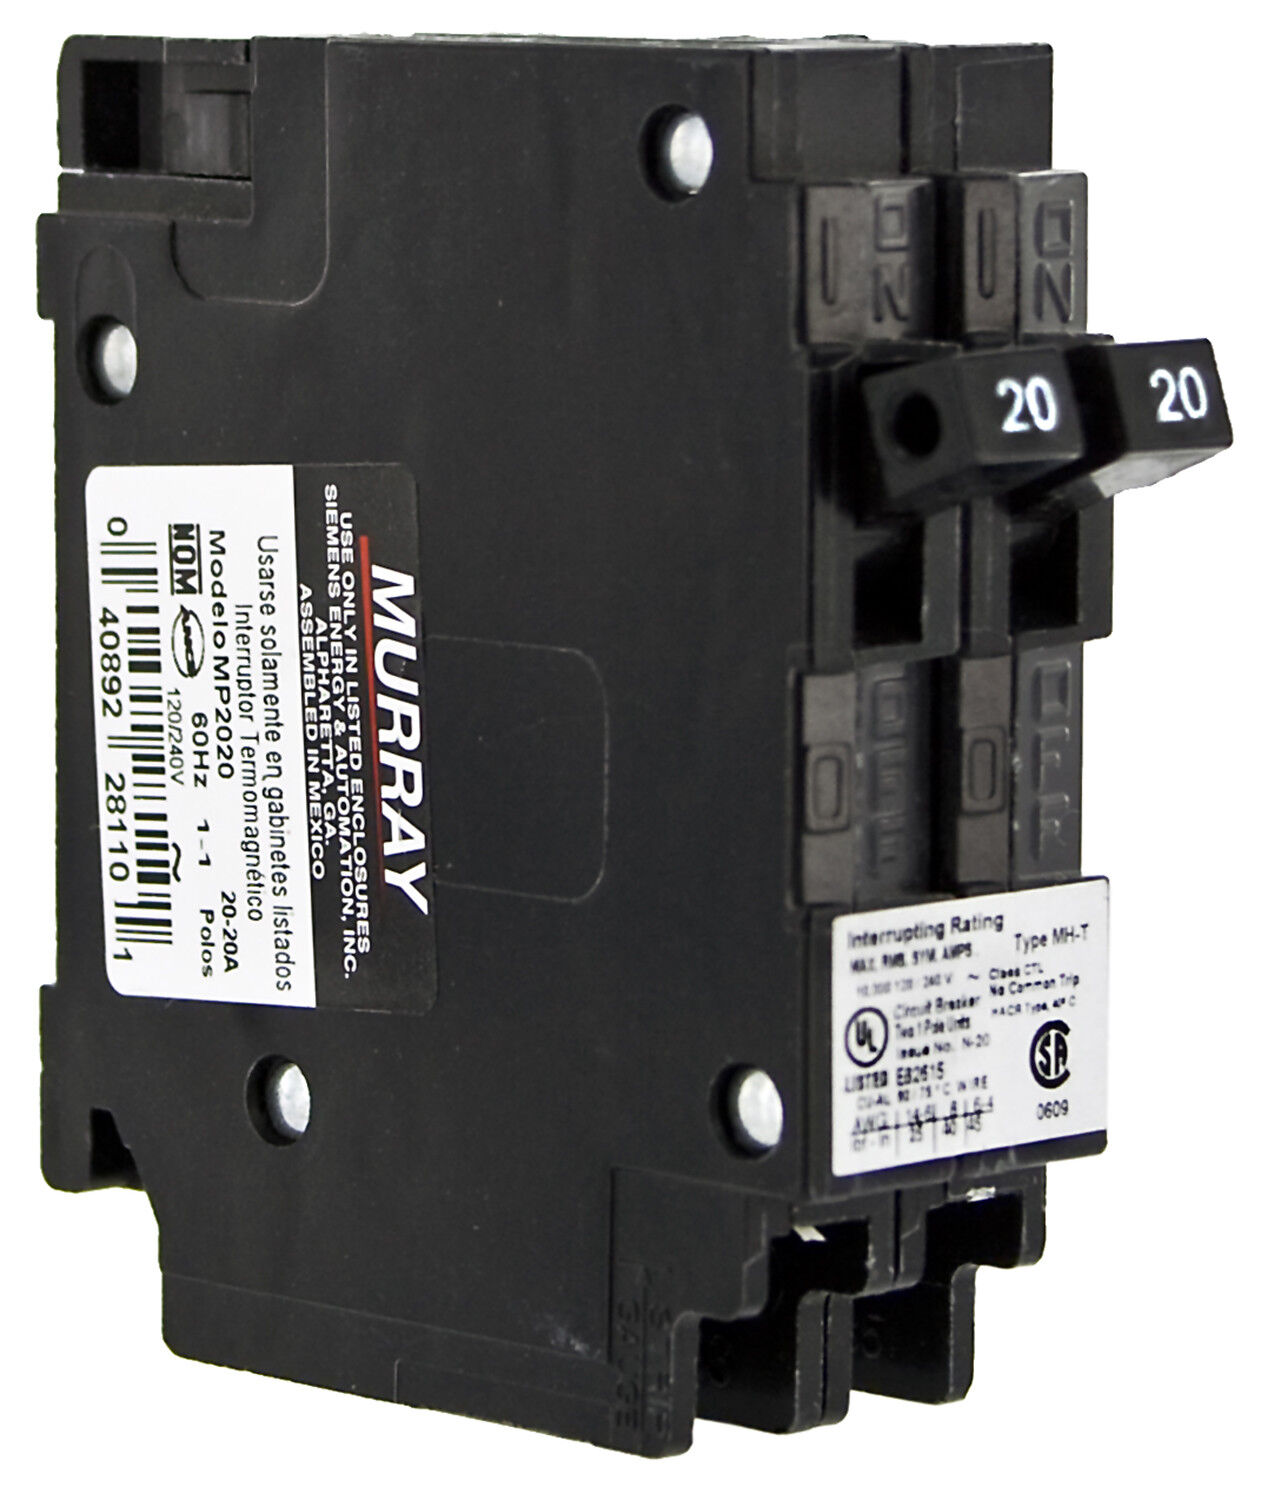 Murray Mp2020 Two 20 Amp Single Pole 120 Volt Circuit Breaker Diagram Of Pushmatic Panel Wiring Stock Photo